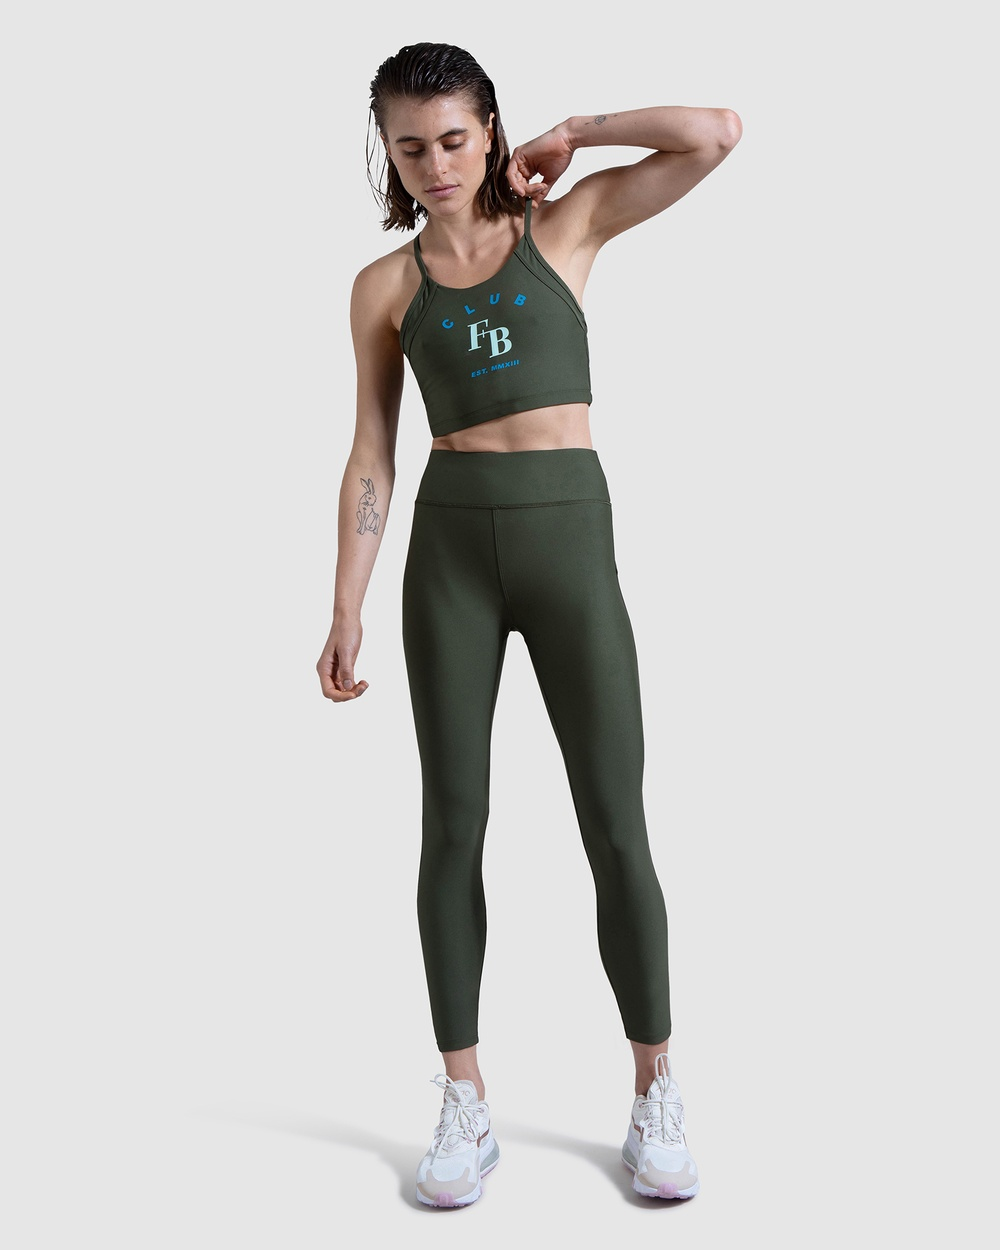 First Base Heritage 7 8 Leggings Compression Bottoms Green 7-8